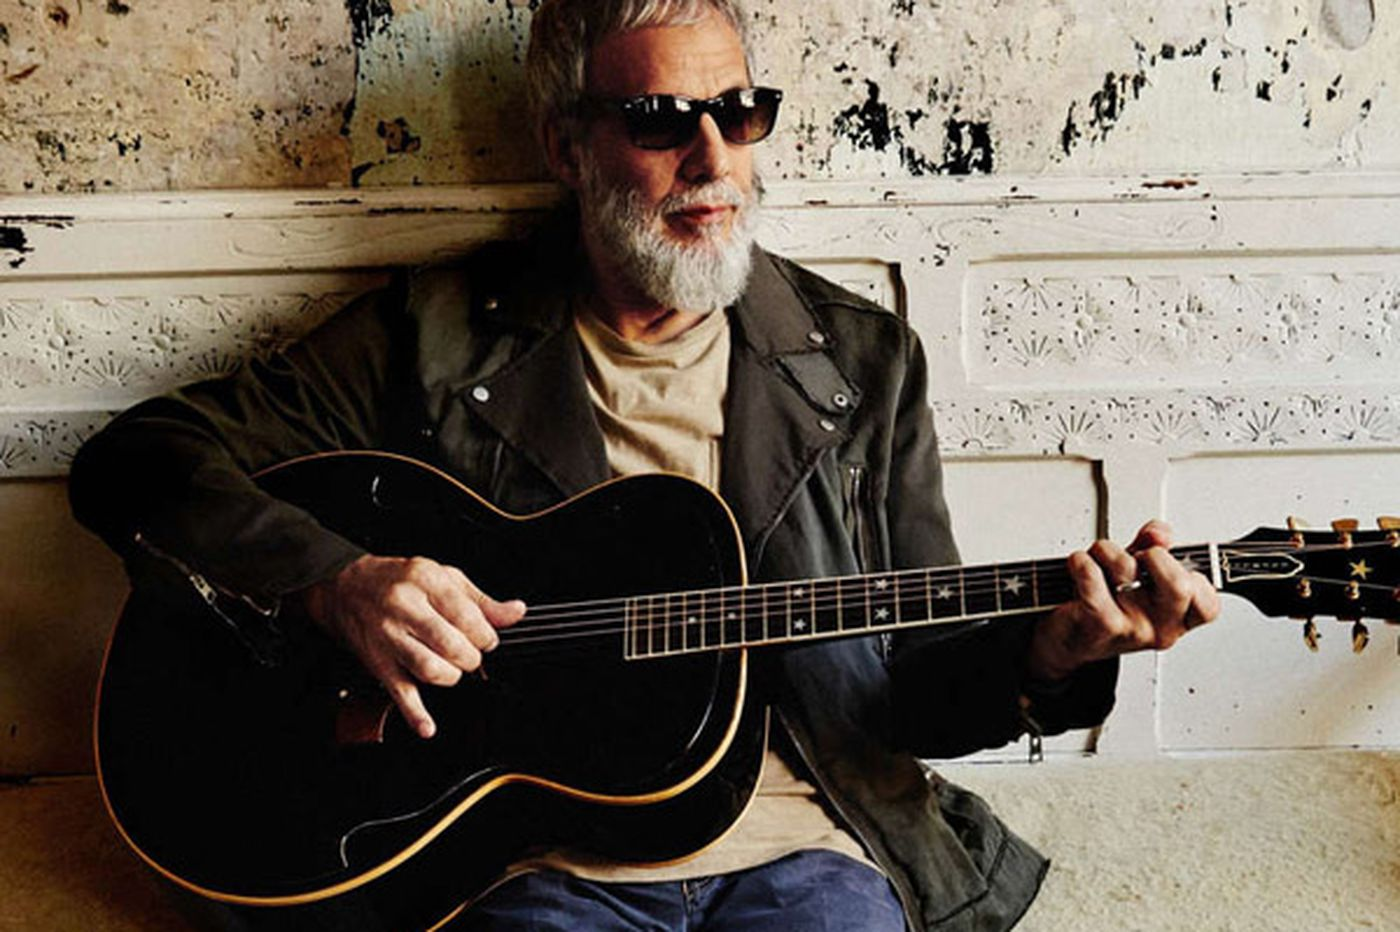 Whether Cat Stevens or Yusuf, he charms the Tower Theater